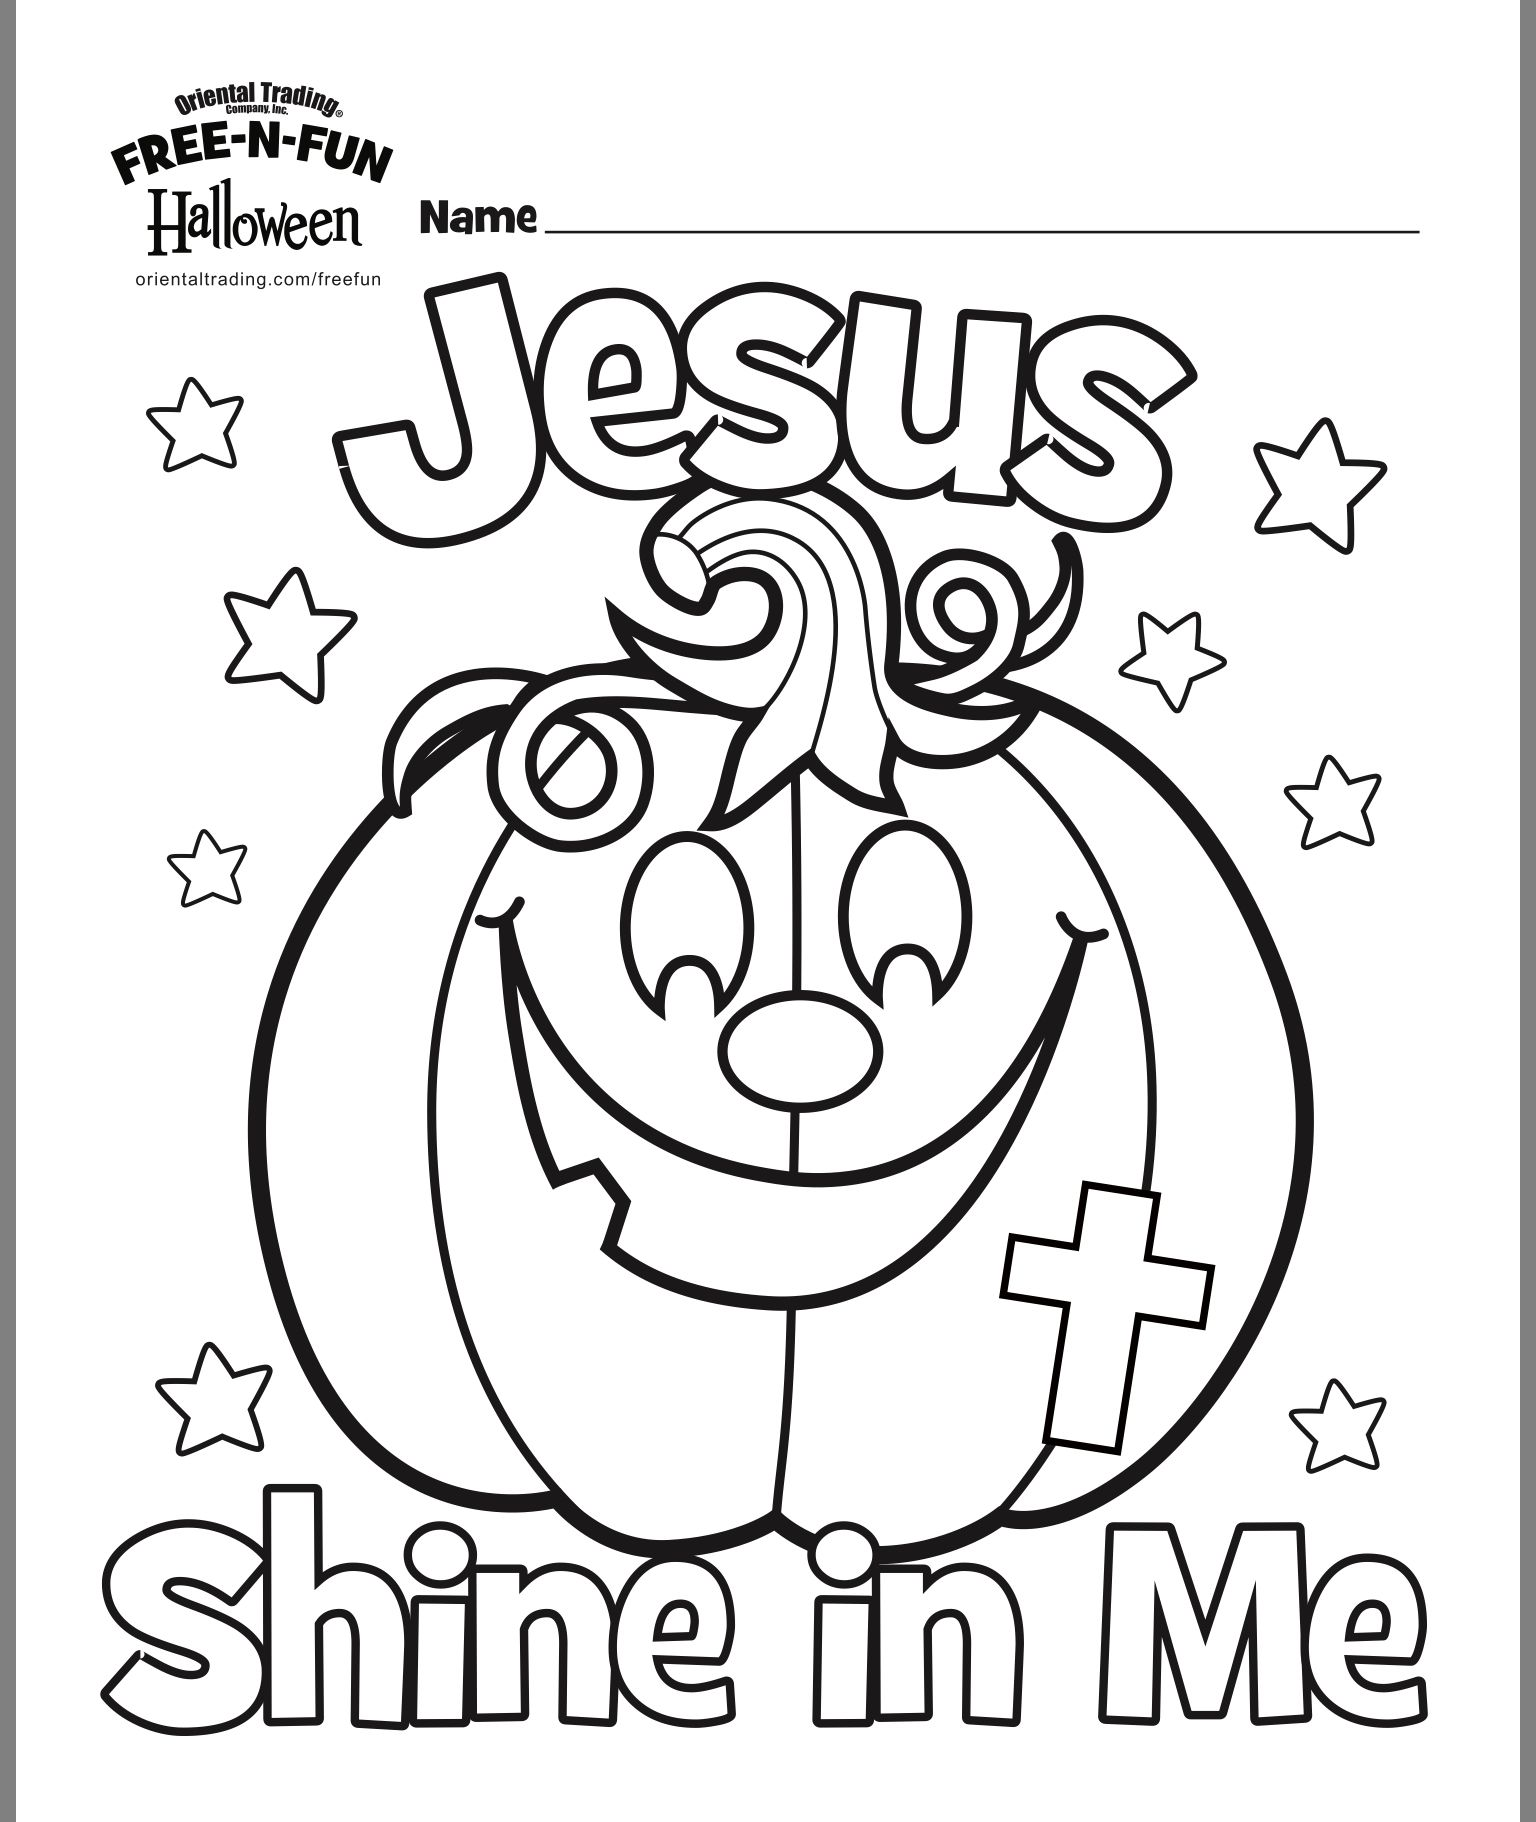 Pin By Louise Swaine On Classroom Decorations Halloween Coloring Pages Sunday School Crafts Sunday School Preschool